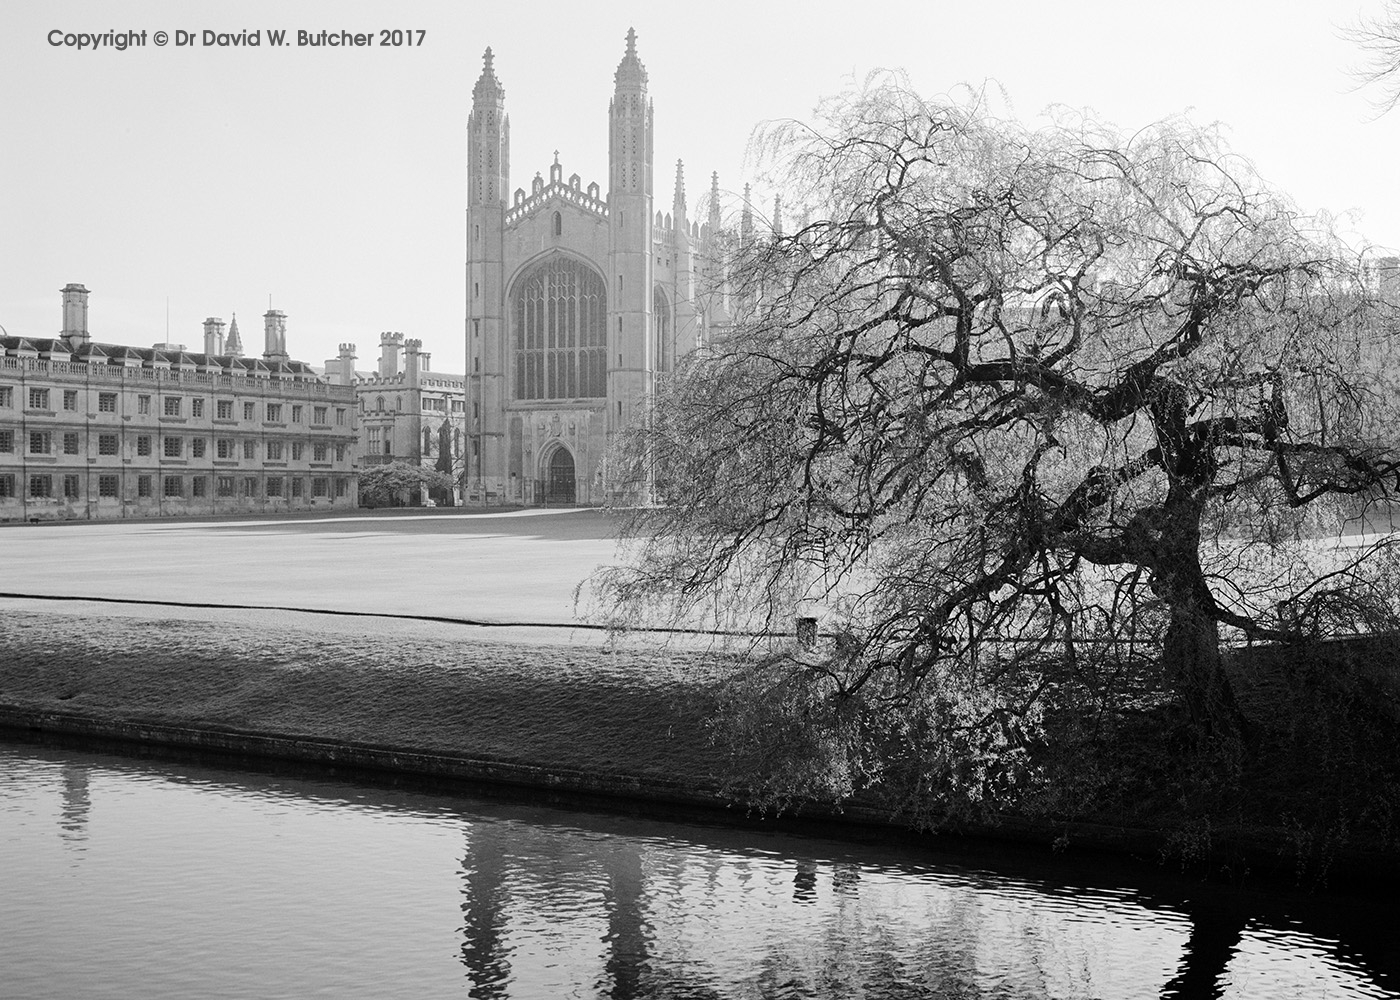 Cambridge King's College Chapel from King's Bridge, England